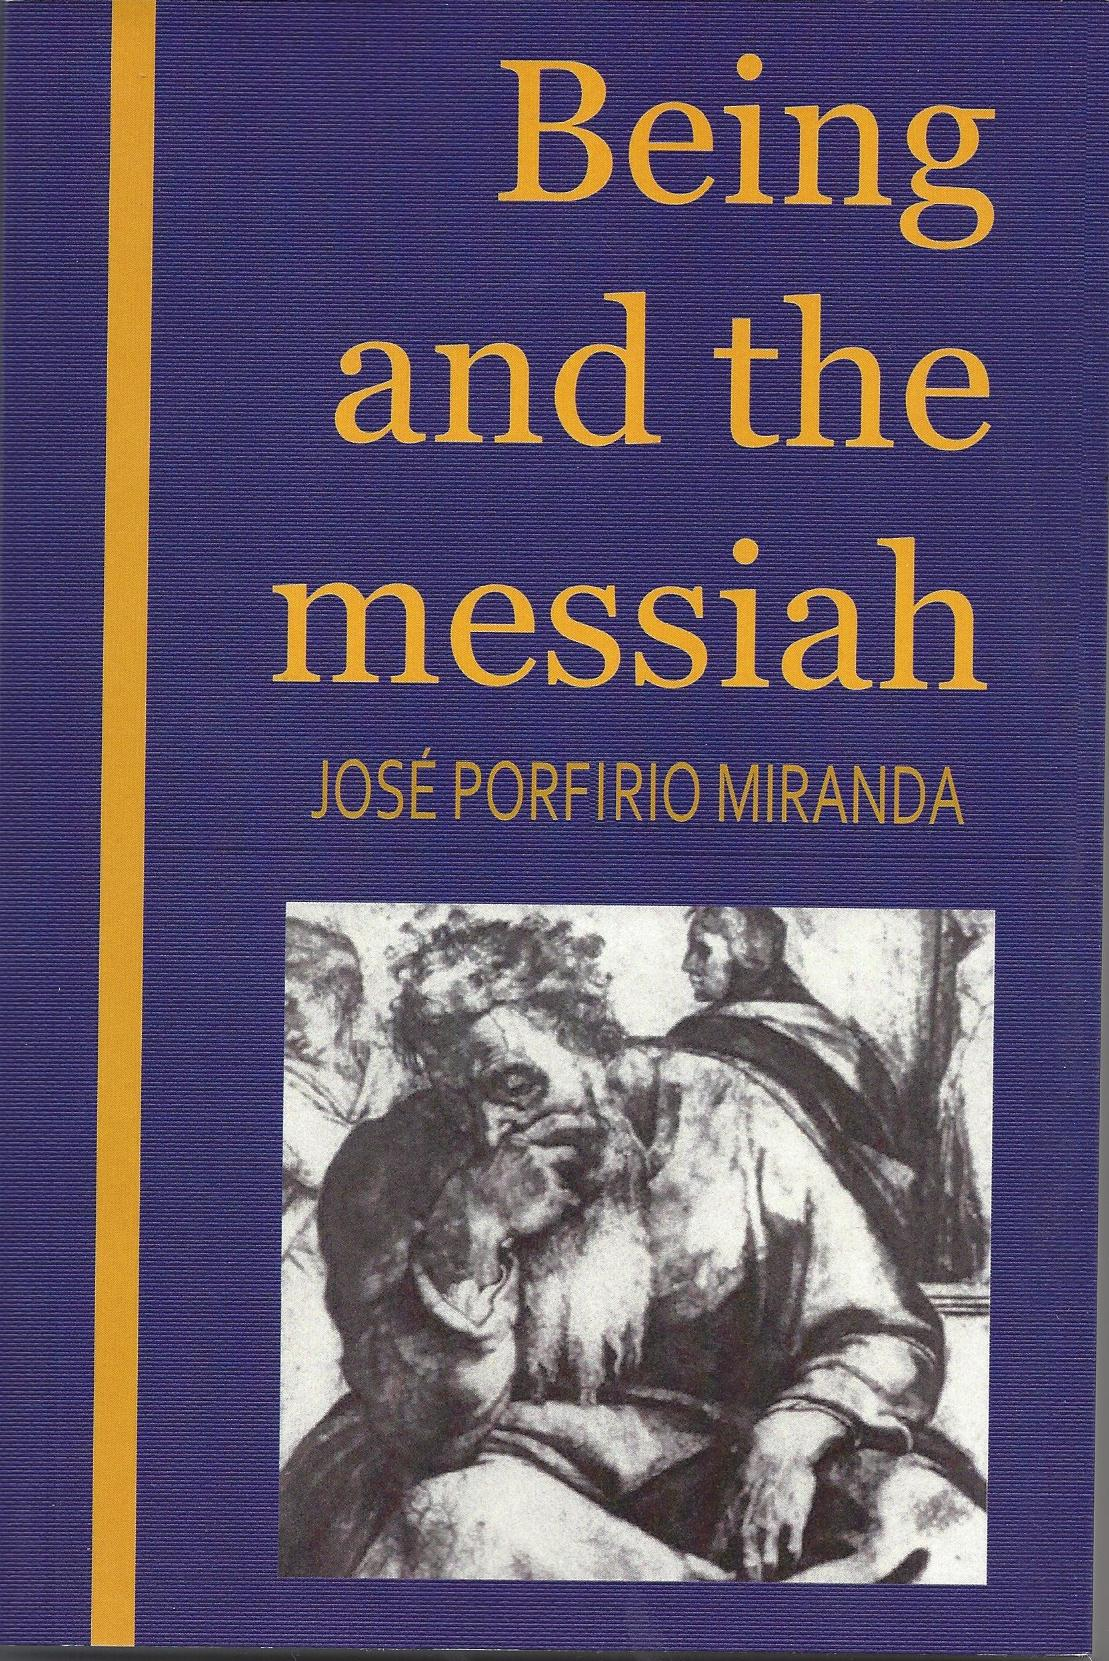 Being and-the-messiah-2015